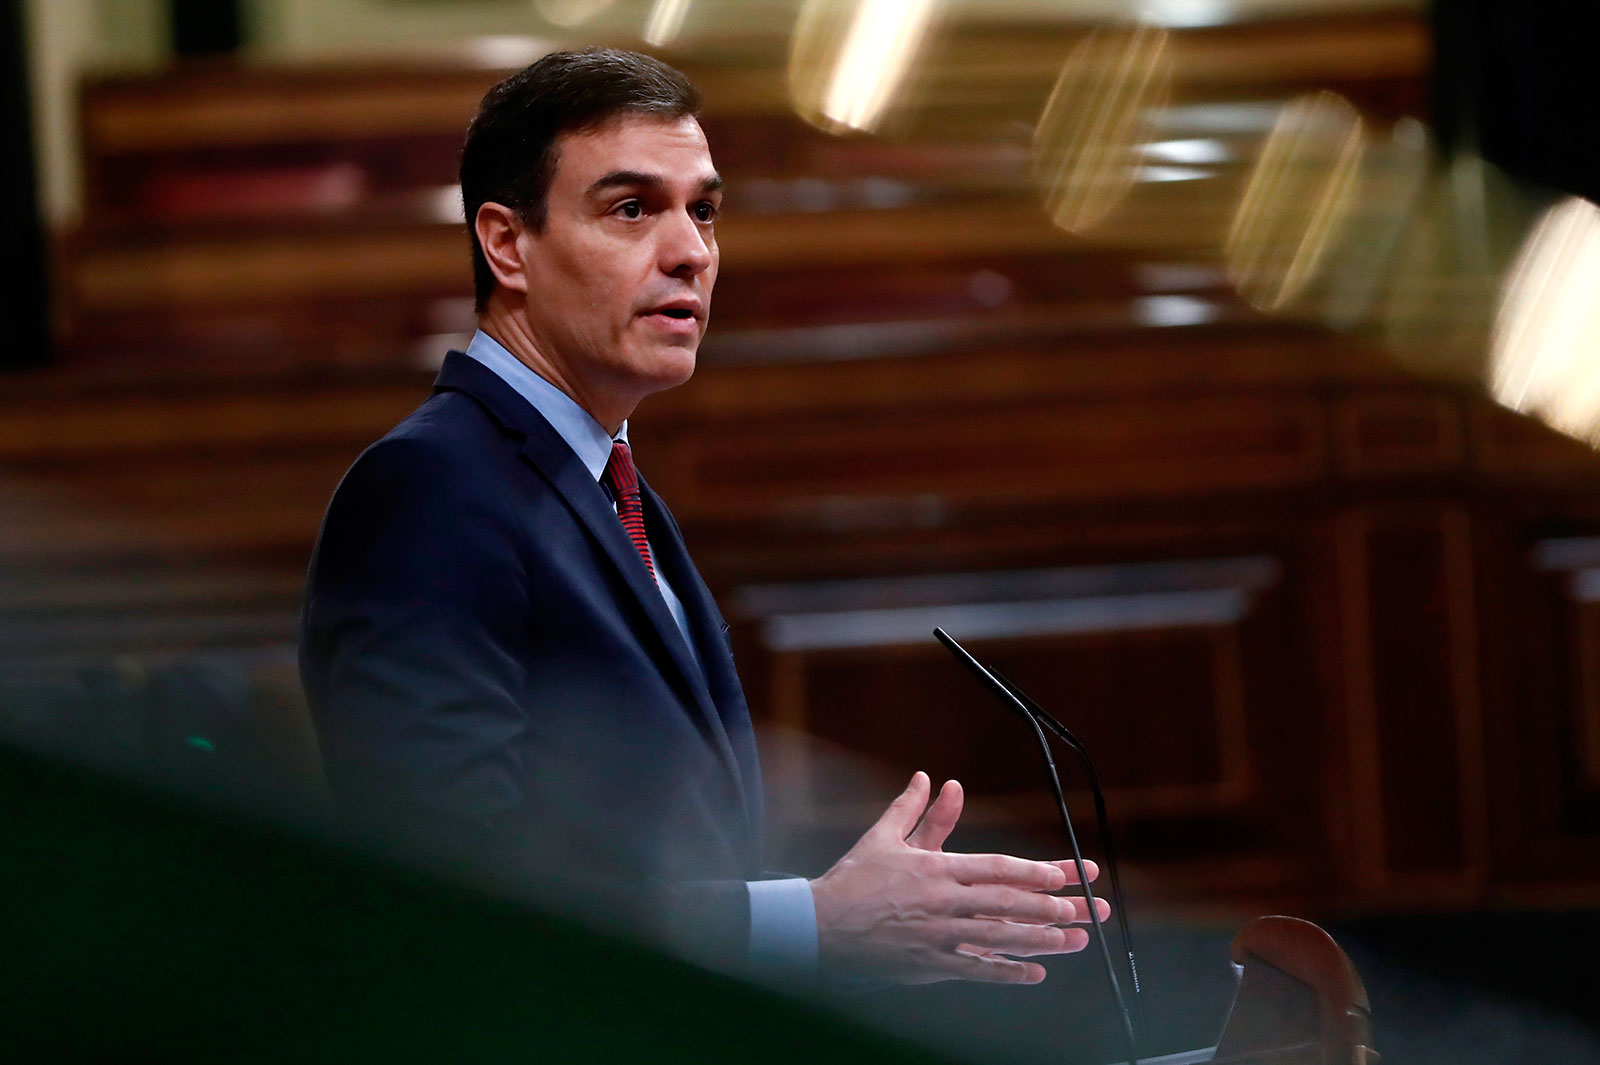 Spanish Prime Minister Pedro Sánchez delivers a speech at Lower Chamber of Spanish Parliament in Madrid on April 9.